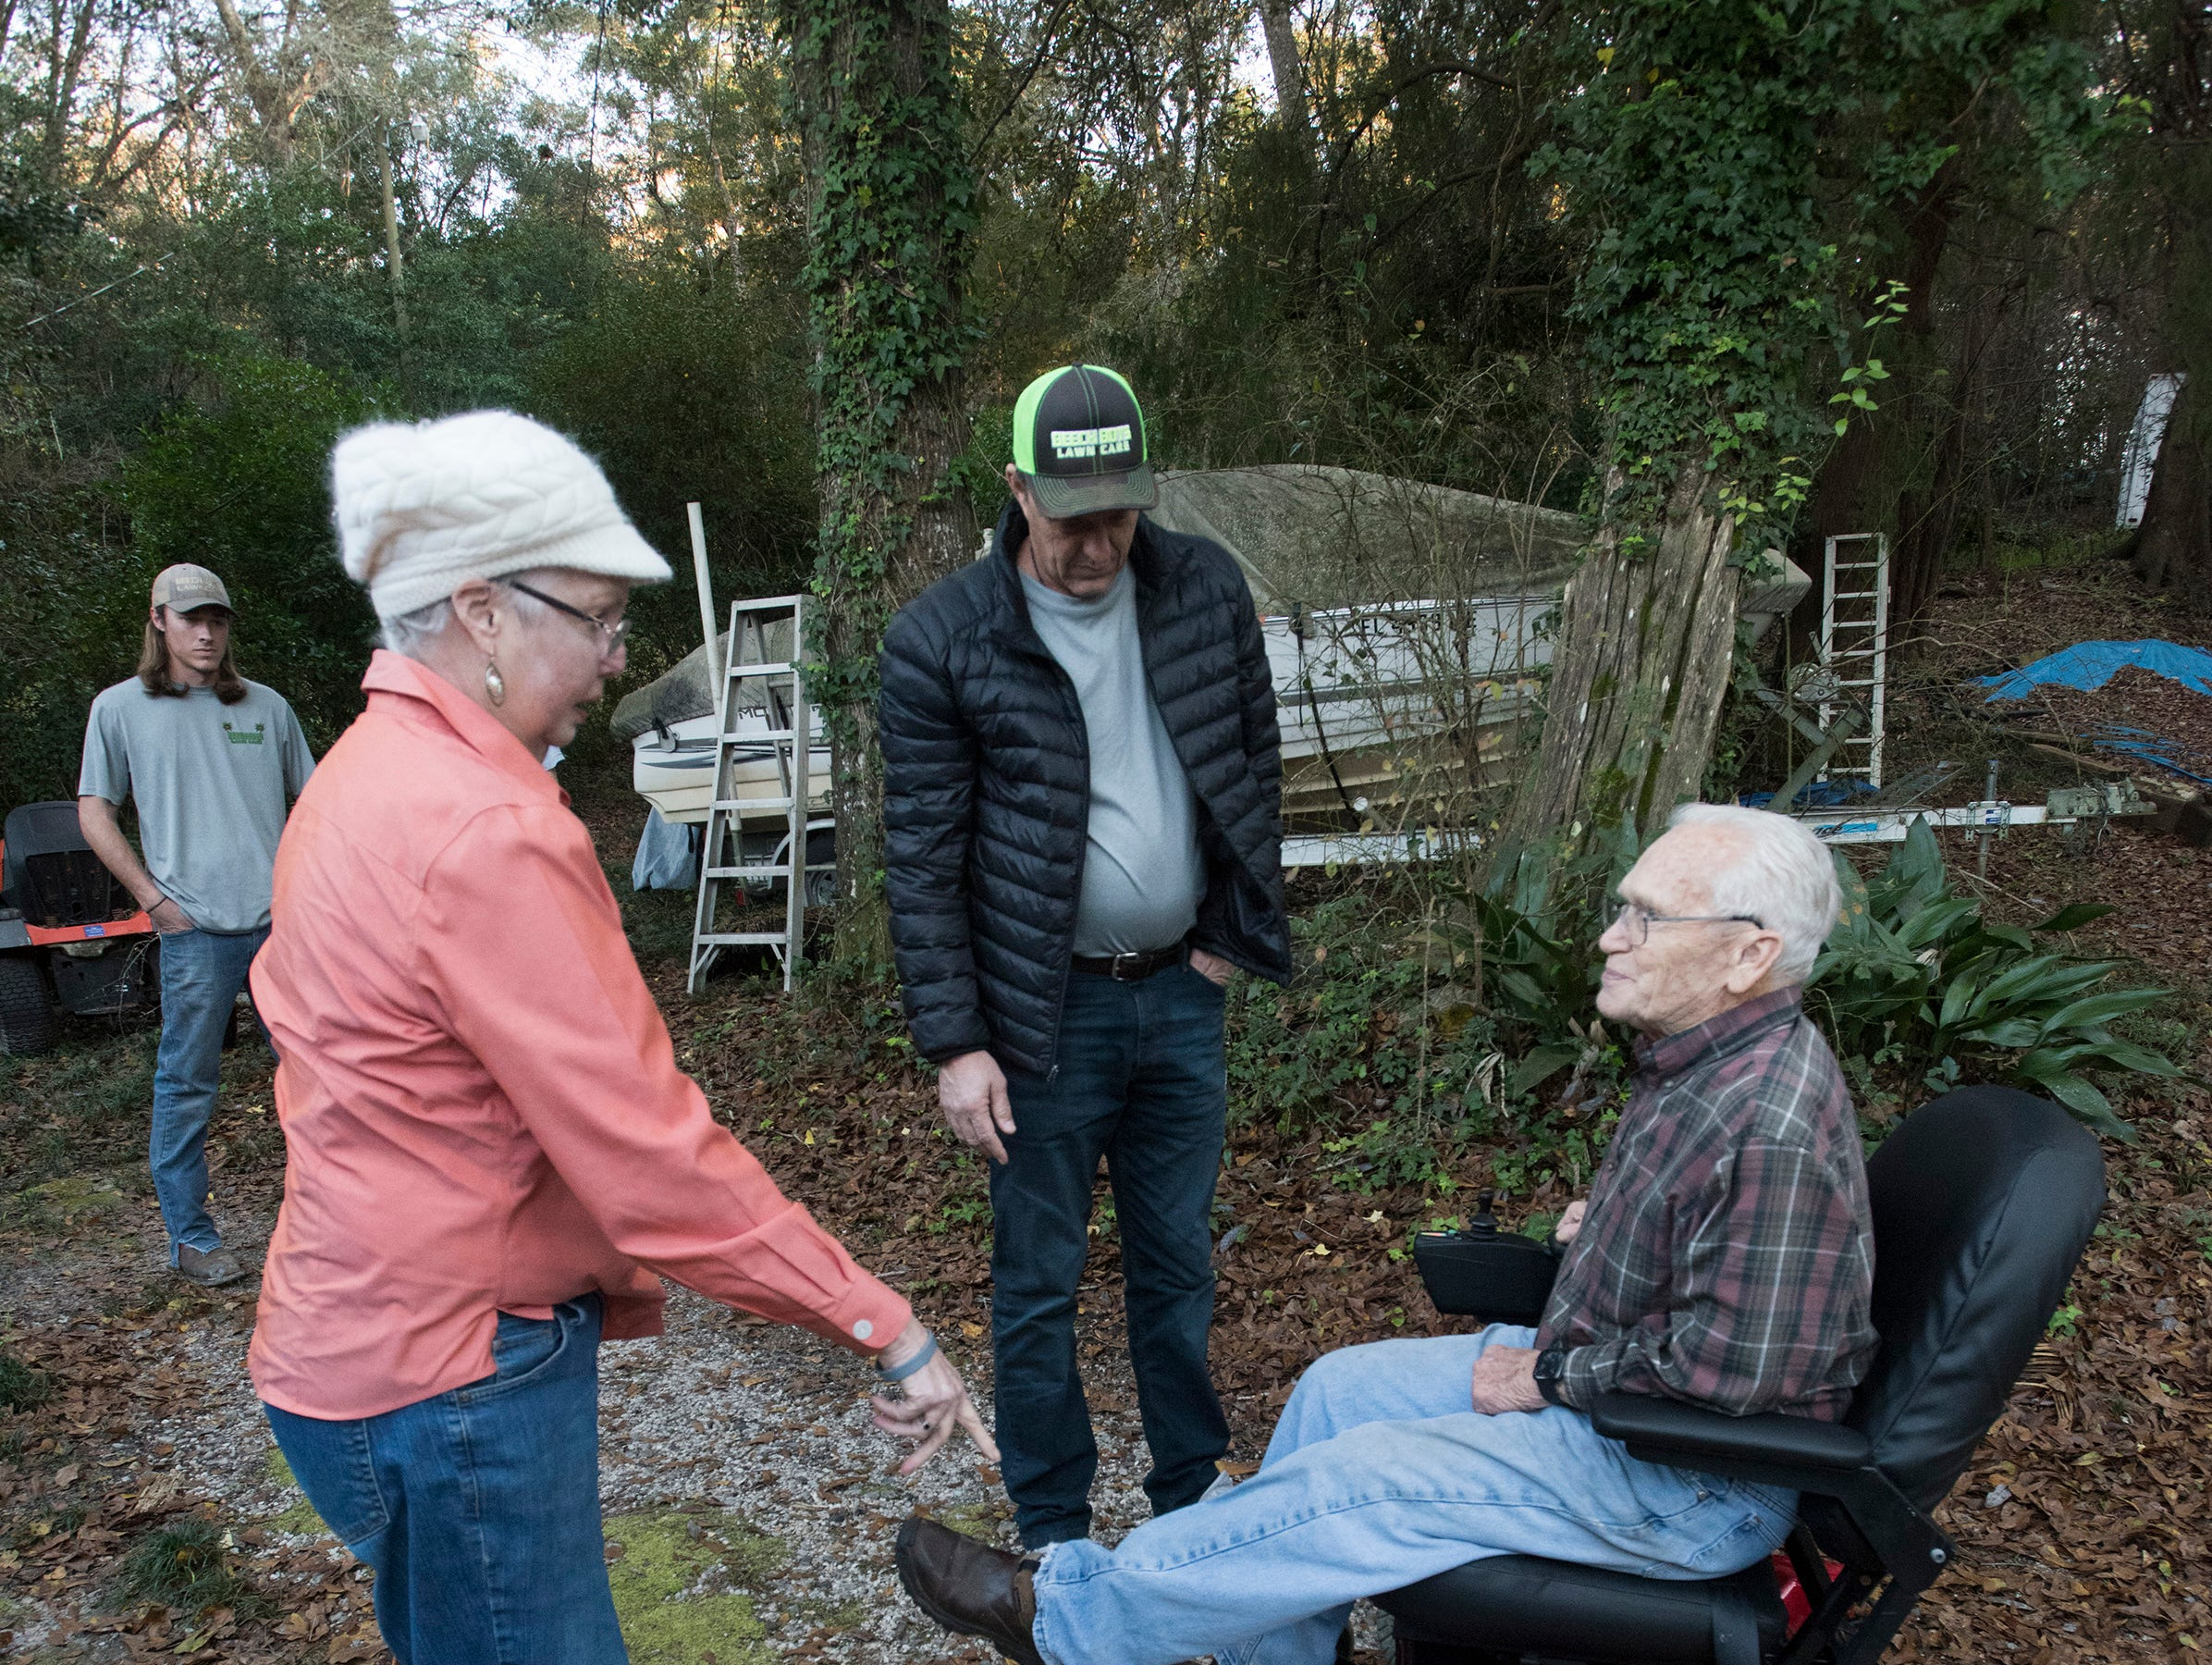 East Milton resident, Jim Blazier, prepares to take his new motorized chair for a spin outside his home on Friday, Jan. 4, 2019, while his wife Phyllis, and Rick Beech, look on.  Blazier and his wife received the restored chair as a gift from Rick Beech, the owner of Beech Boys Lawn Care.